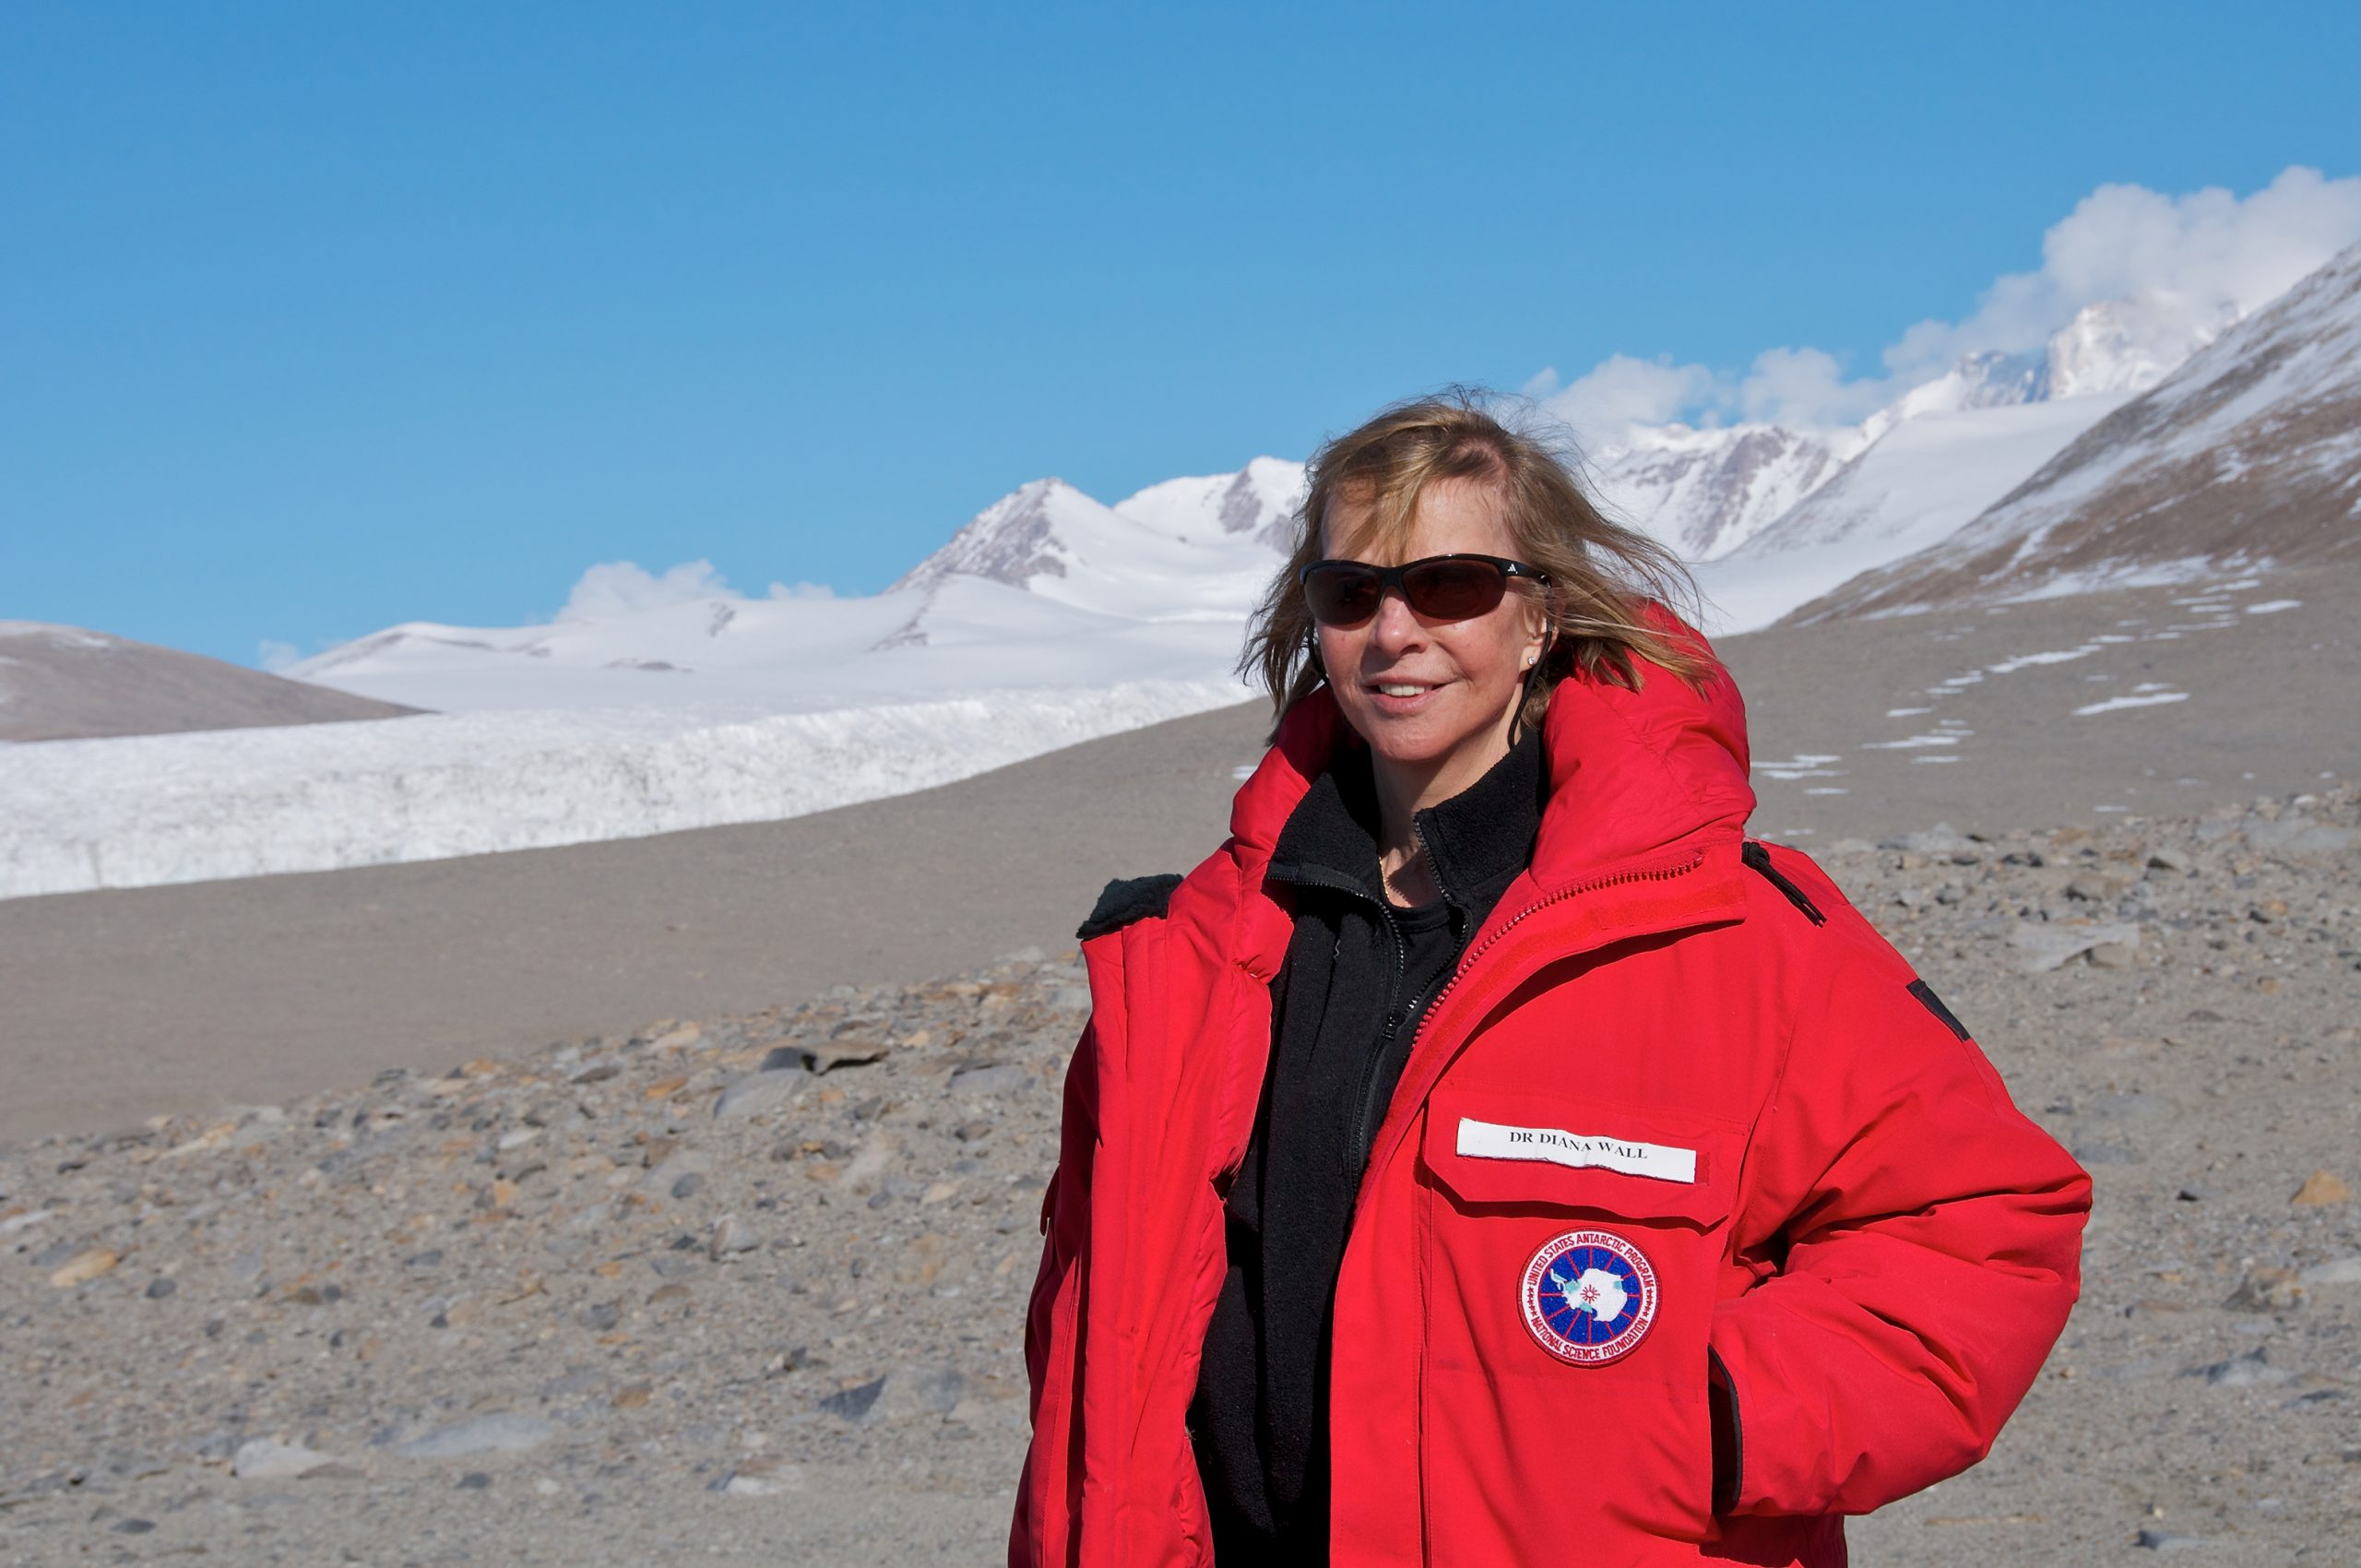 The Ecological Society of America's 2017 Eminent Ecologist, Diana Wall, takes a break from sampling soil biodiversity along an elevational transect as part of the McMurdo Dry Valley LTER project in Miers Valley, Antarctica (78°5.326 S, 163°46.382 E), in January 2013. Photo credit: Martijn Vandegehuchte